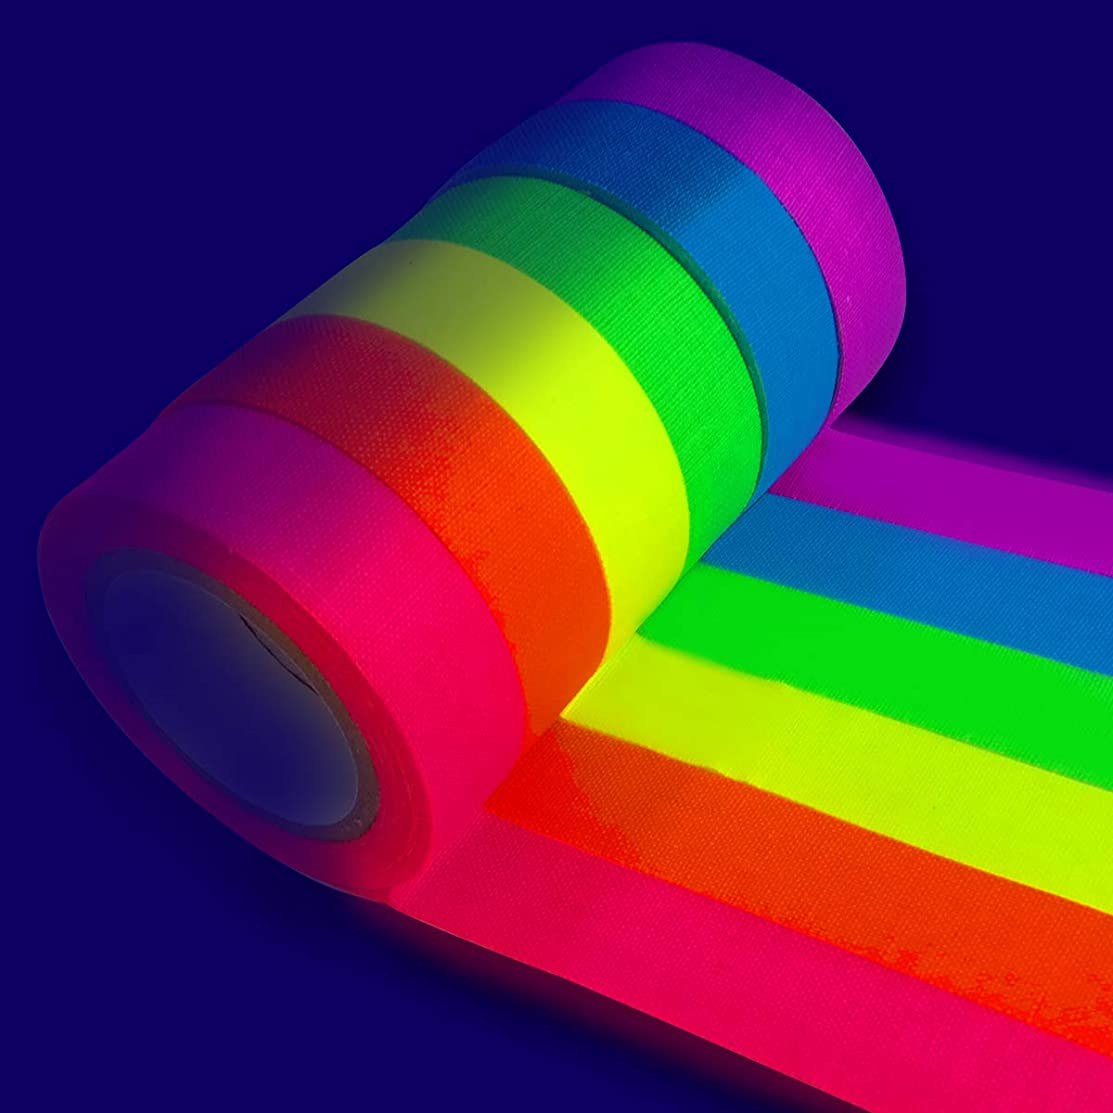 Neon Tape UV Blacklight Glow Reactive Fluorescent Cloth Gaffer Tape Matte Finish Party Decorate for Halloween School Activities (0.59inch Wide x 16.4ft Long/Roll) Six Rolls/Pack